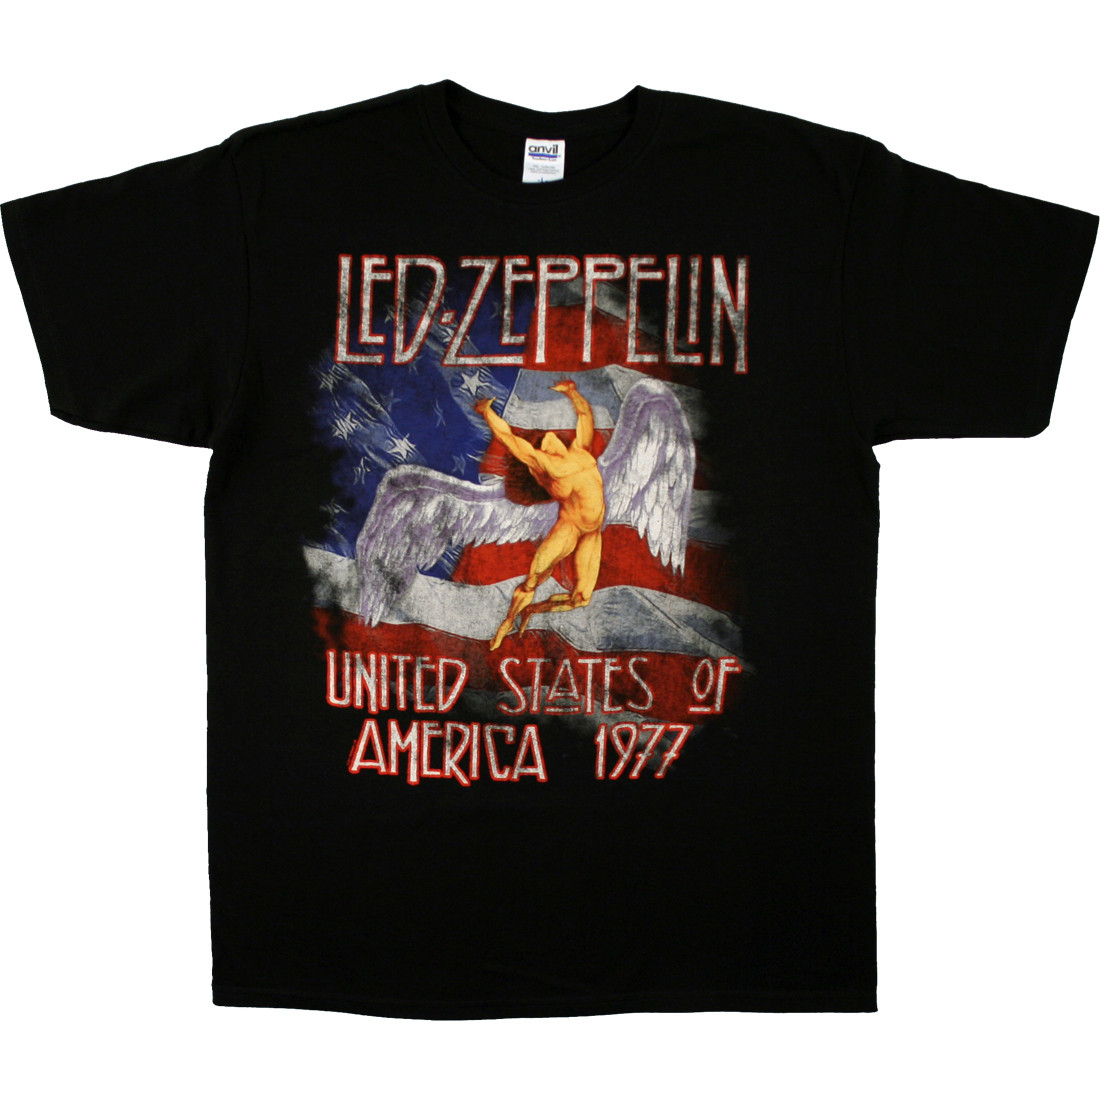 Led Zeppelin America 1977 Black T-Shirt